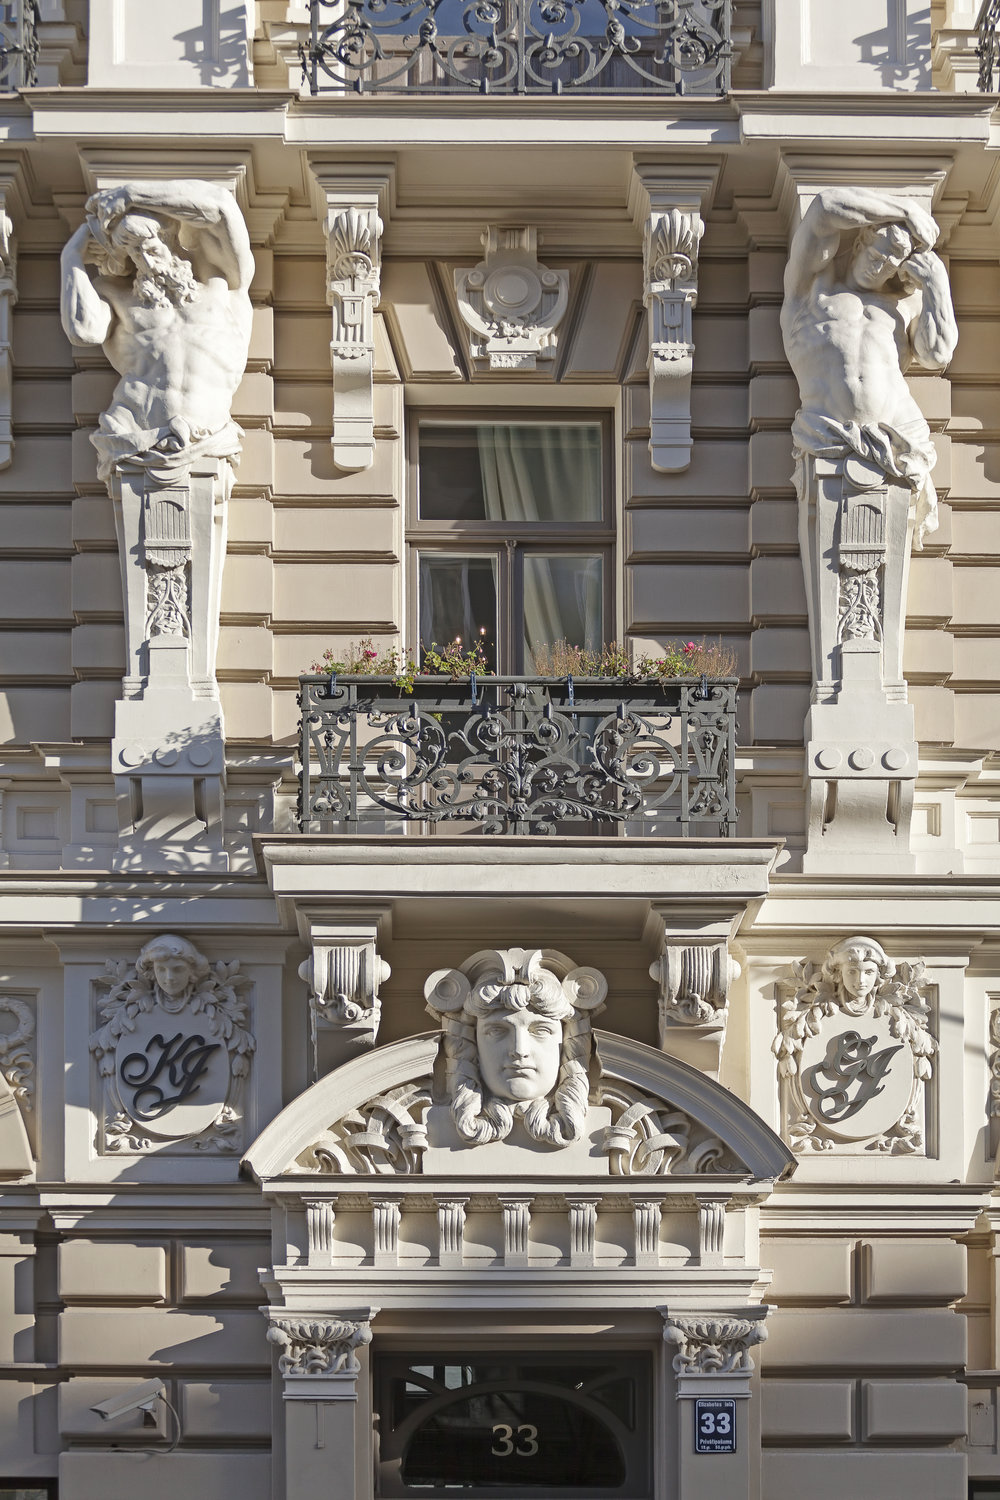 TAVA26_Art Nouveau in Riga_Latvia.travel_LIAA.jpg